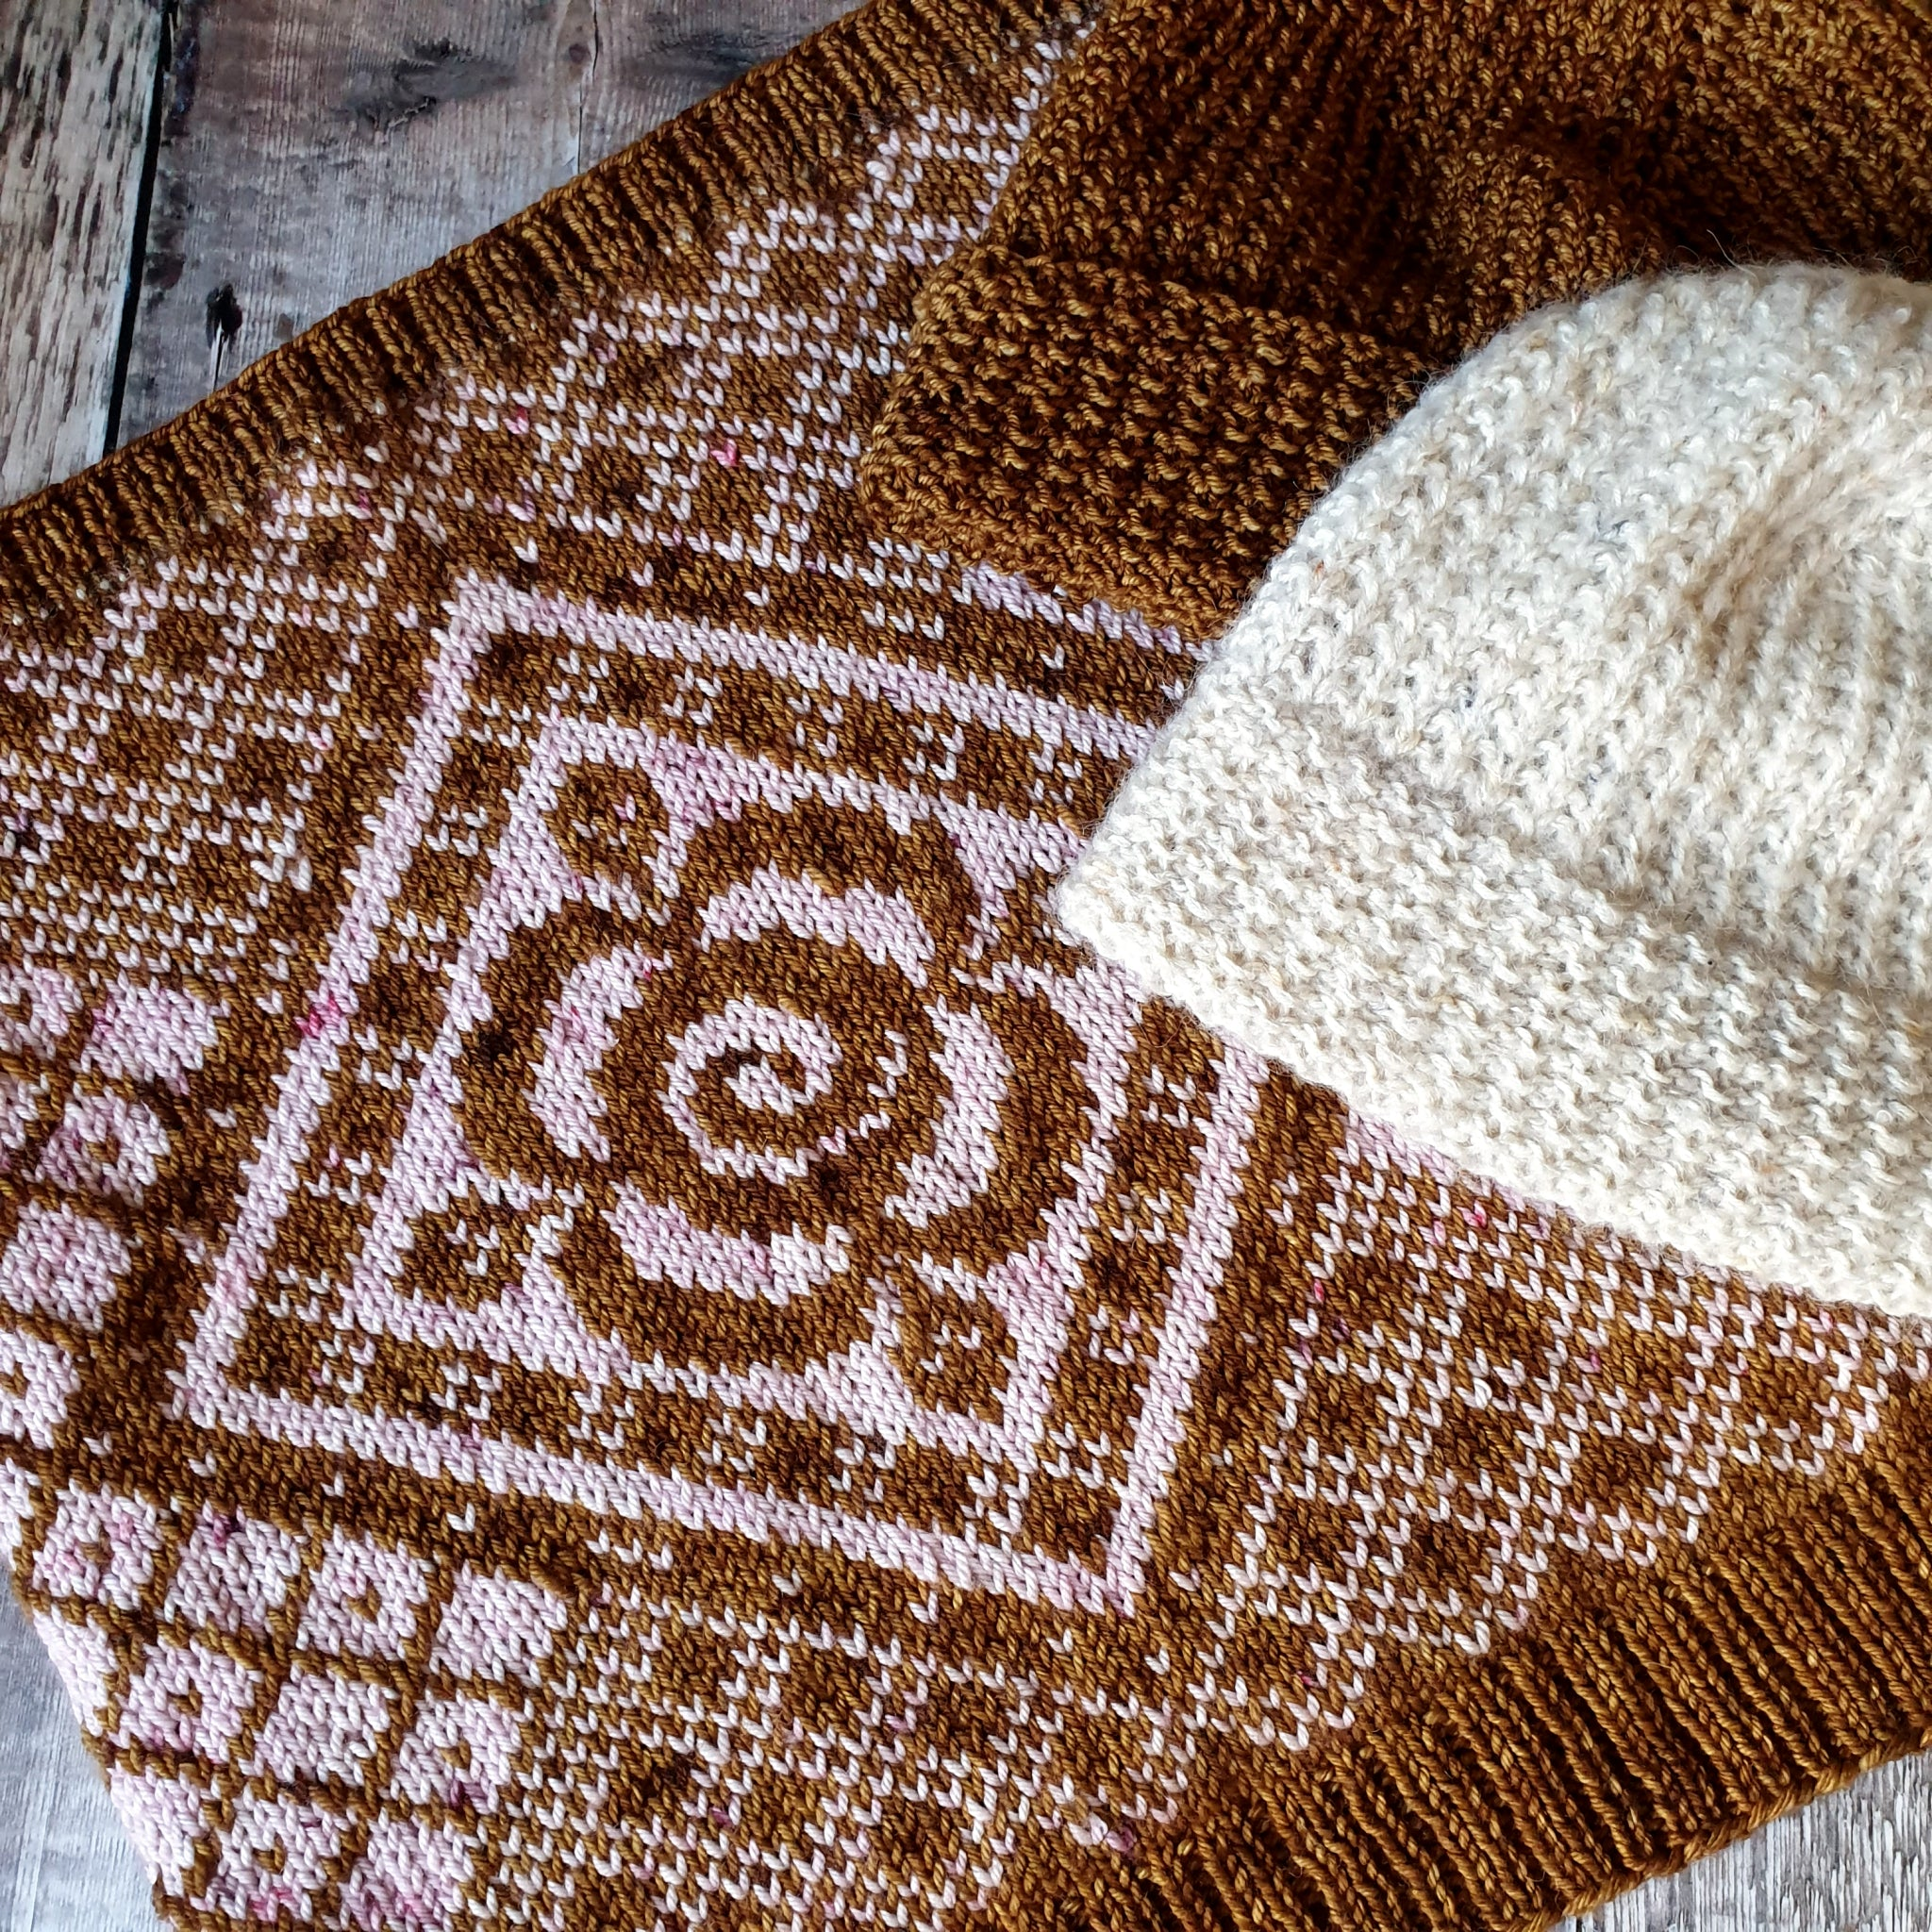 Bridge End Hat Pattern - HFS Original - Downloadable PDFs